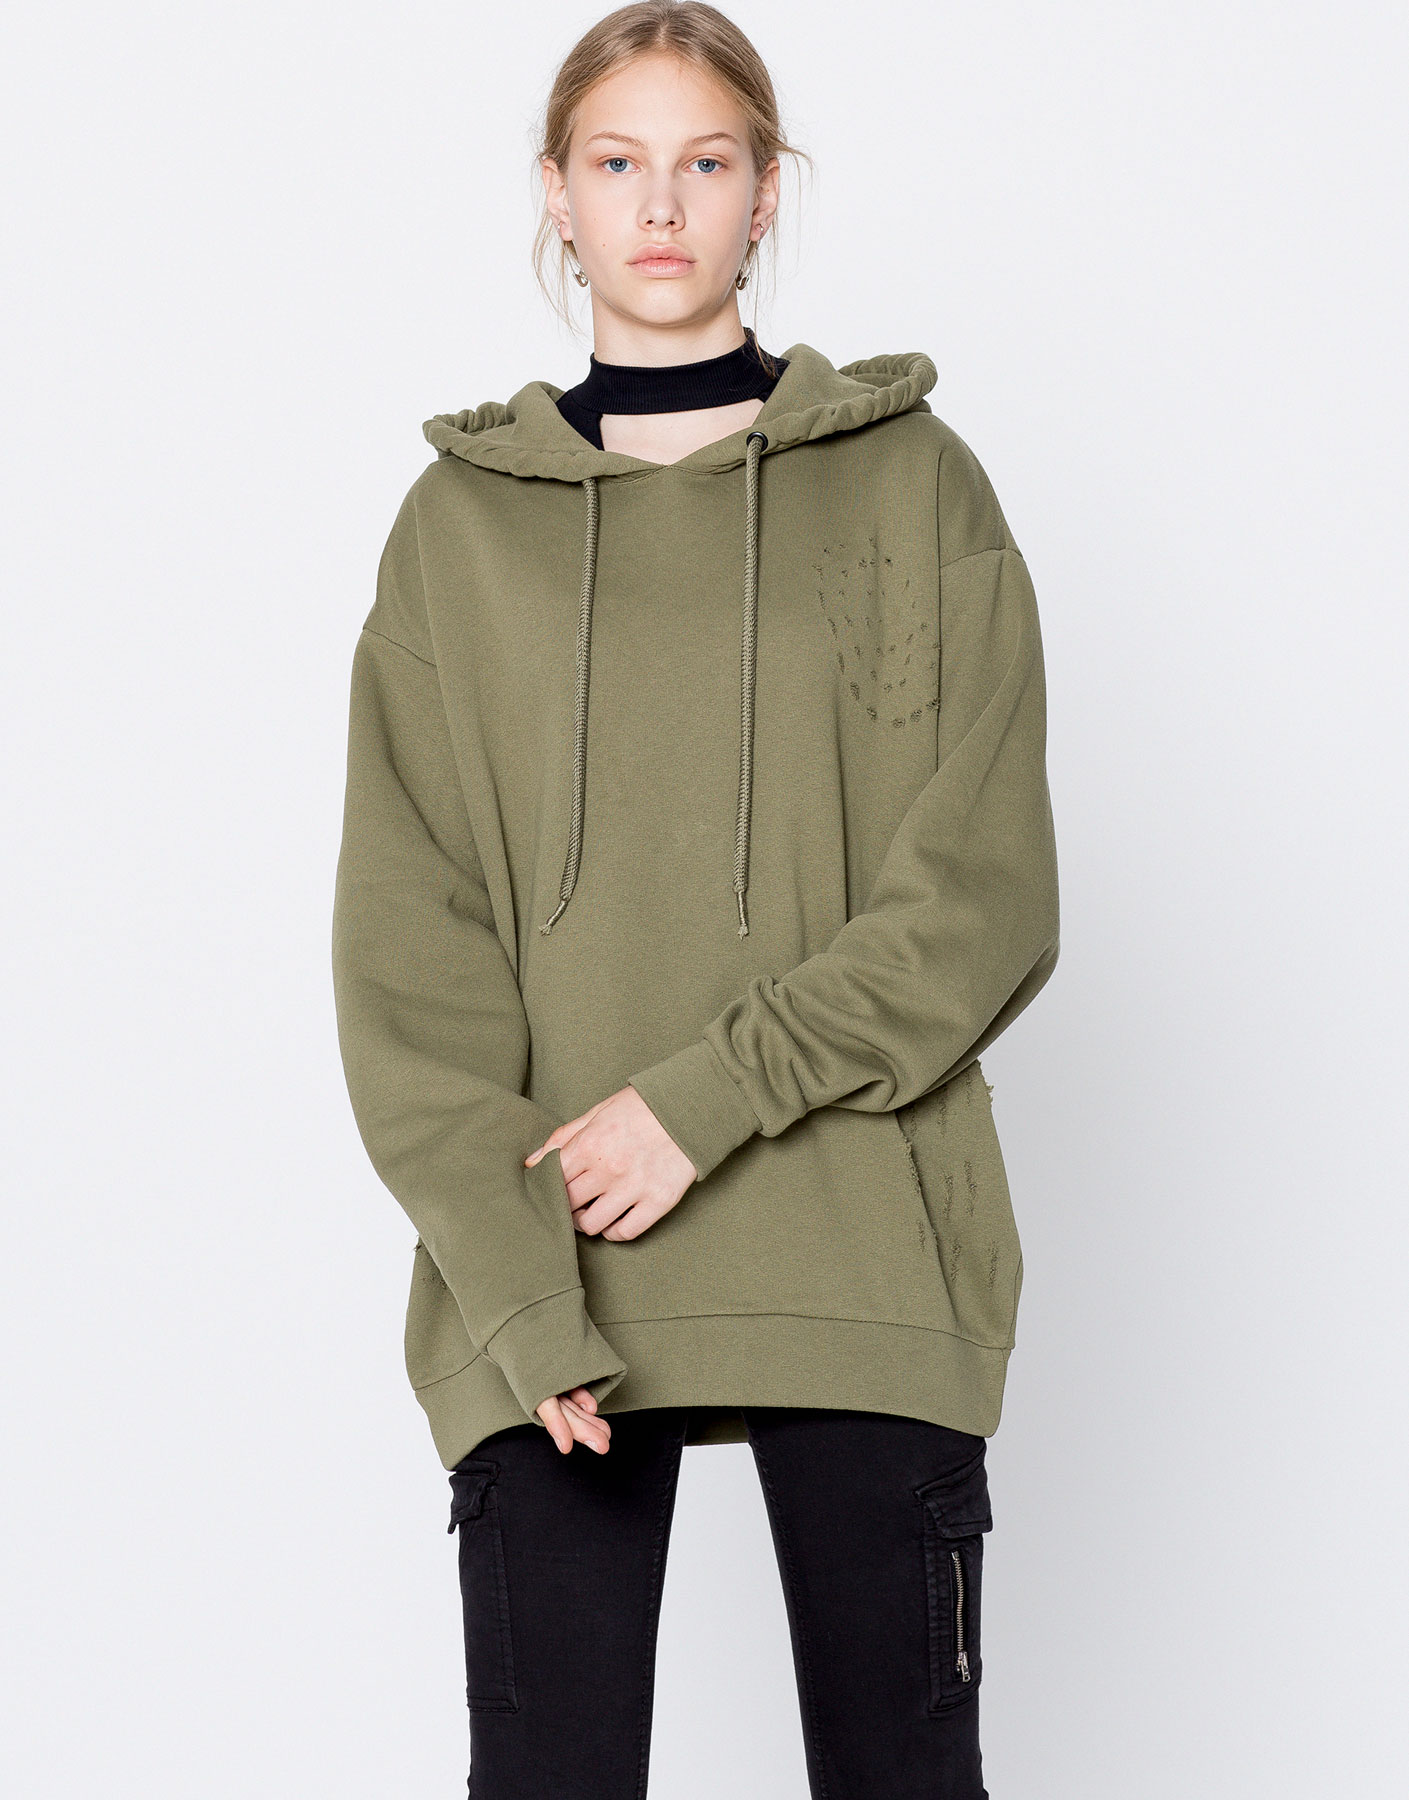 Ripped hooded text sweatshirt